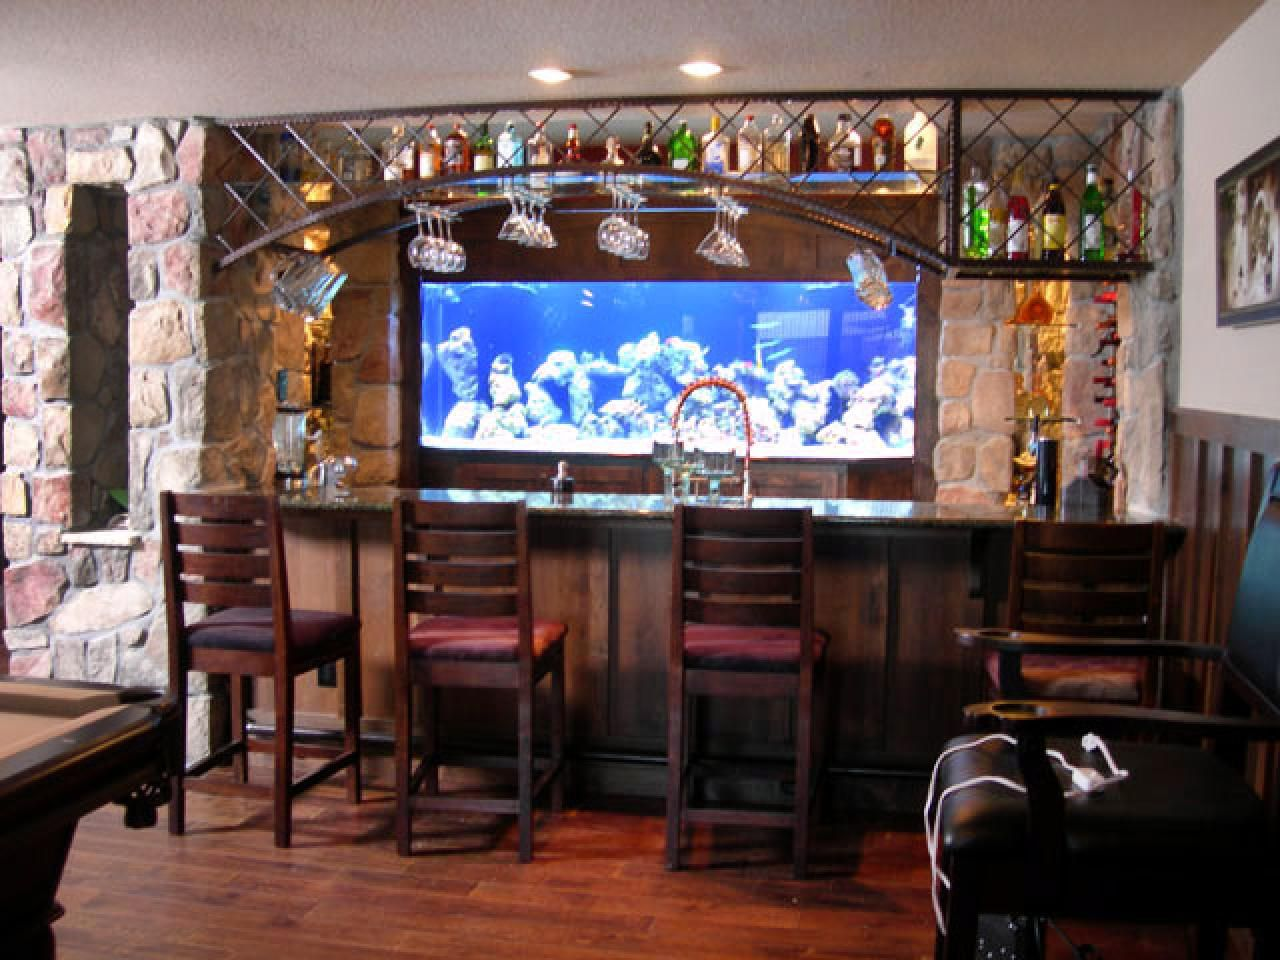 Home bar ideas 89 design options hgtv kitchen design for Lounge area ideas